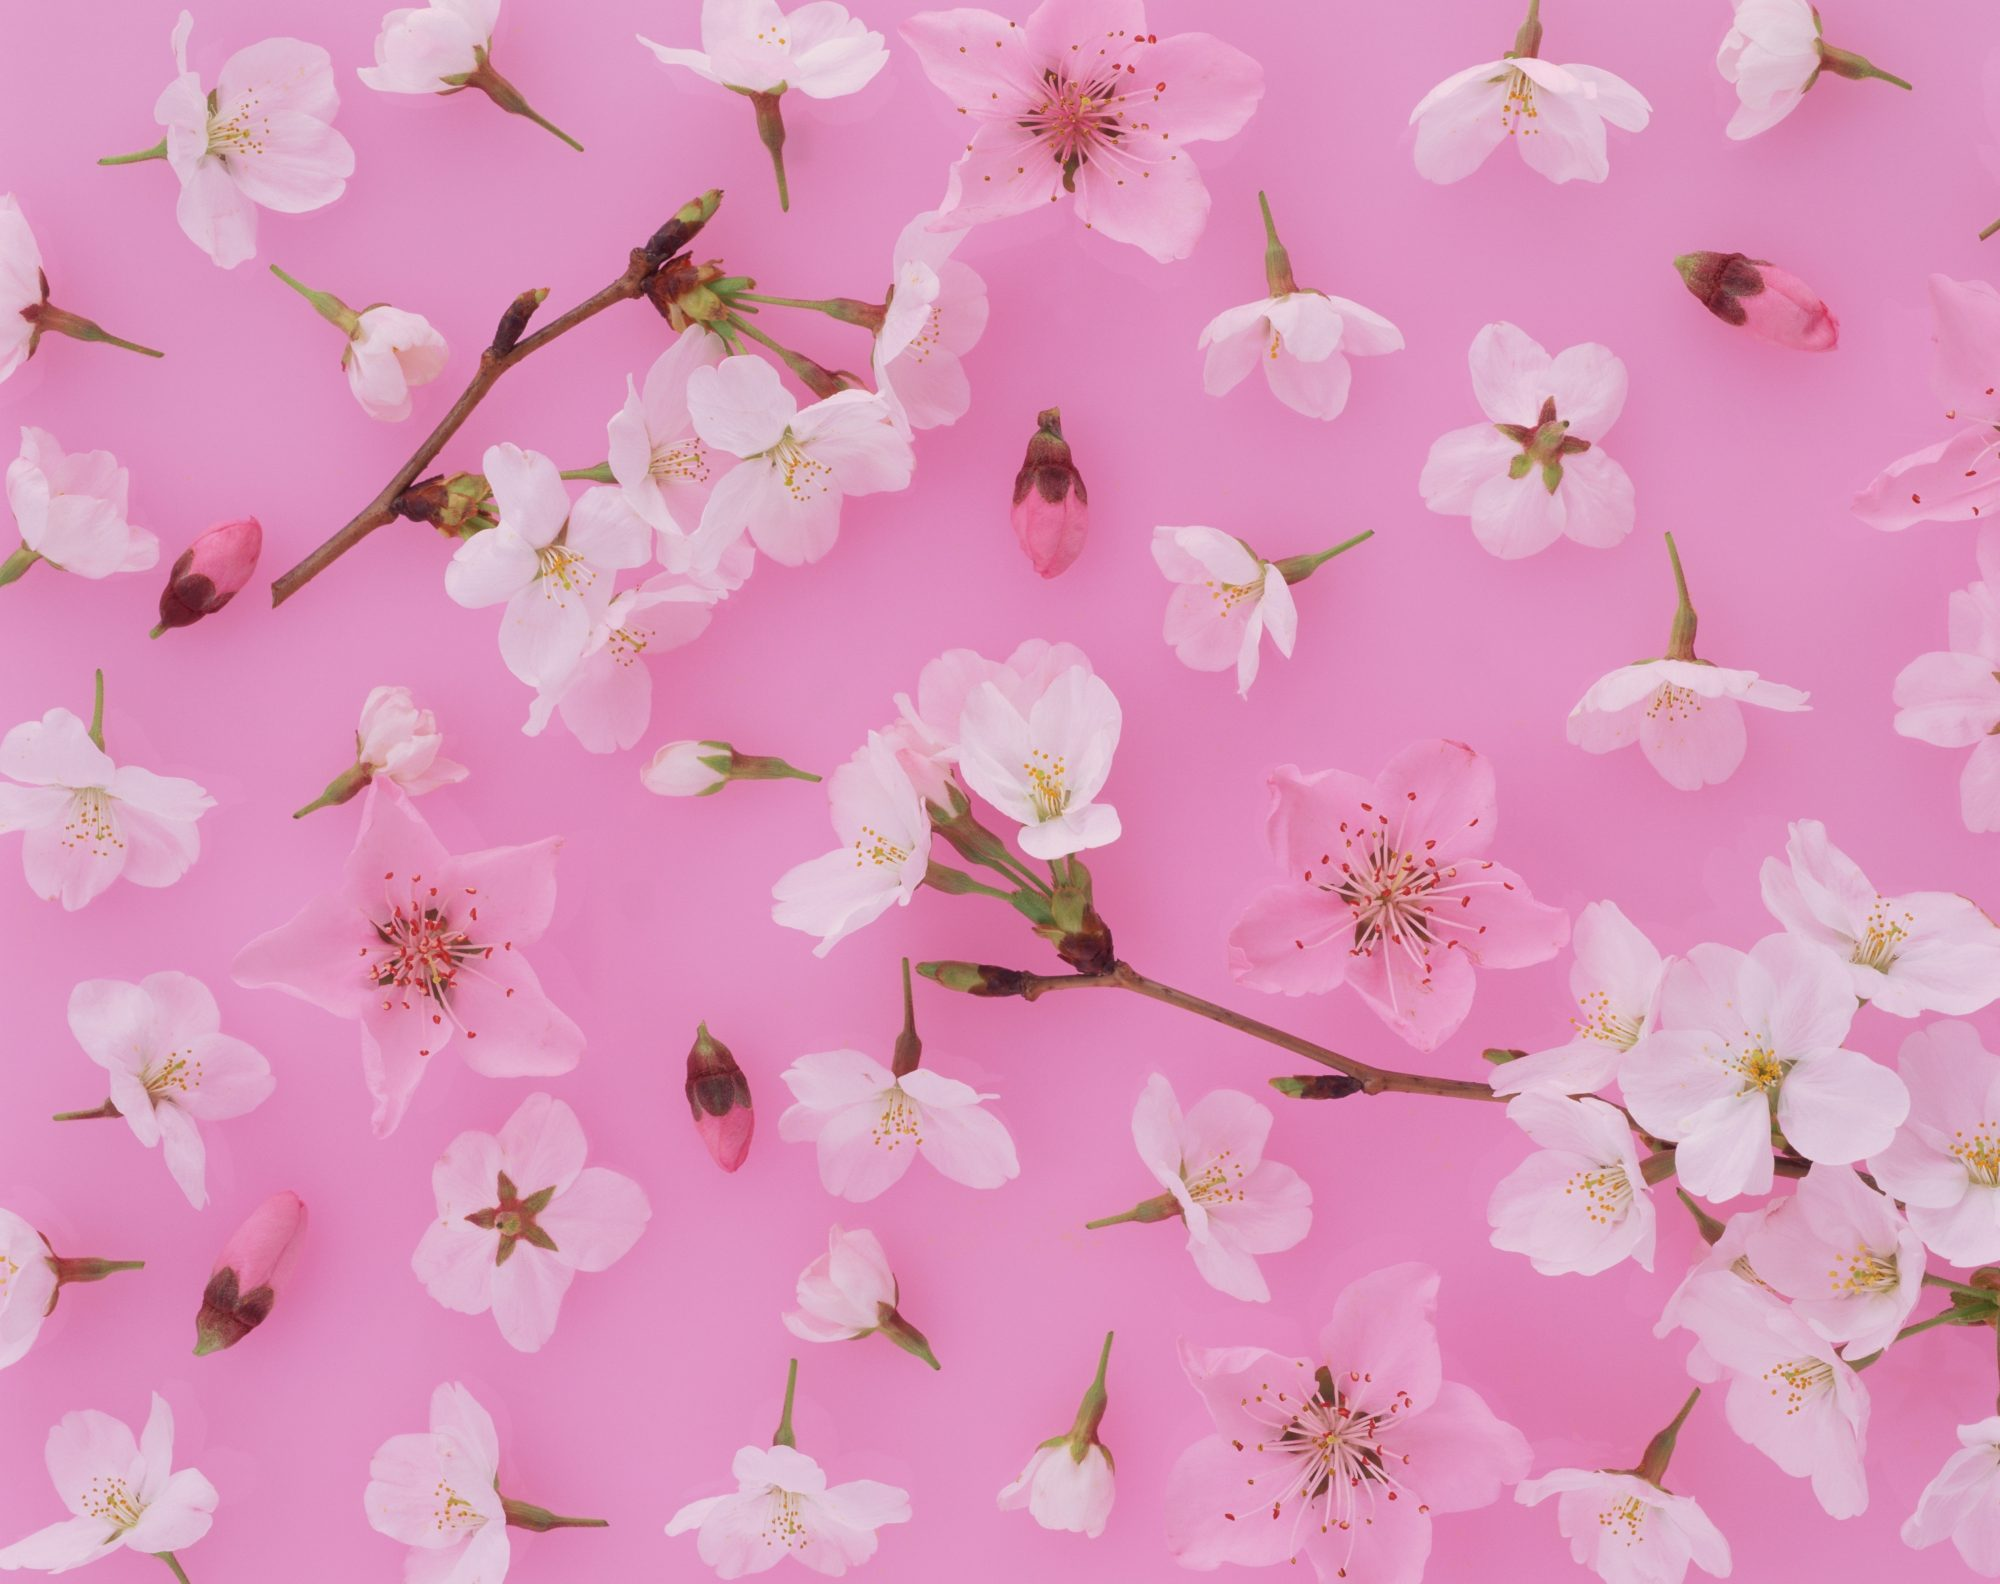 cherry blossoms: spring activities to do during coronavirus outbreak